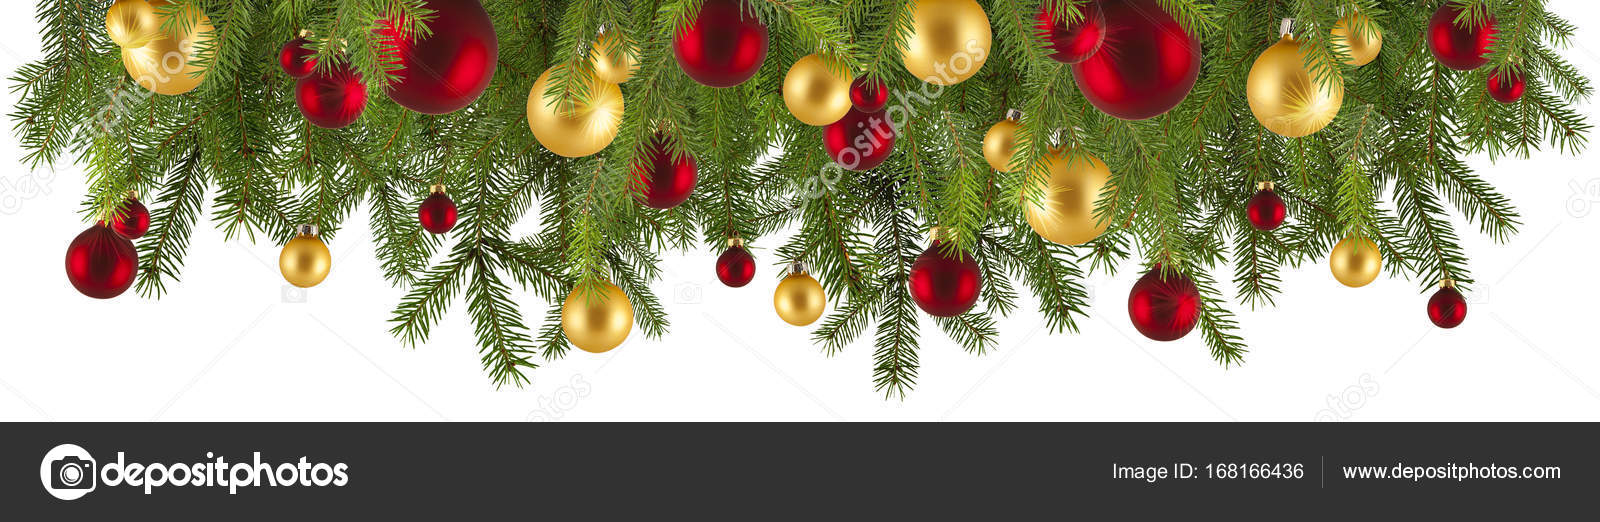 Christmas Garland With Ornaments Isolated Stock Photo C Piolka